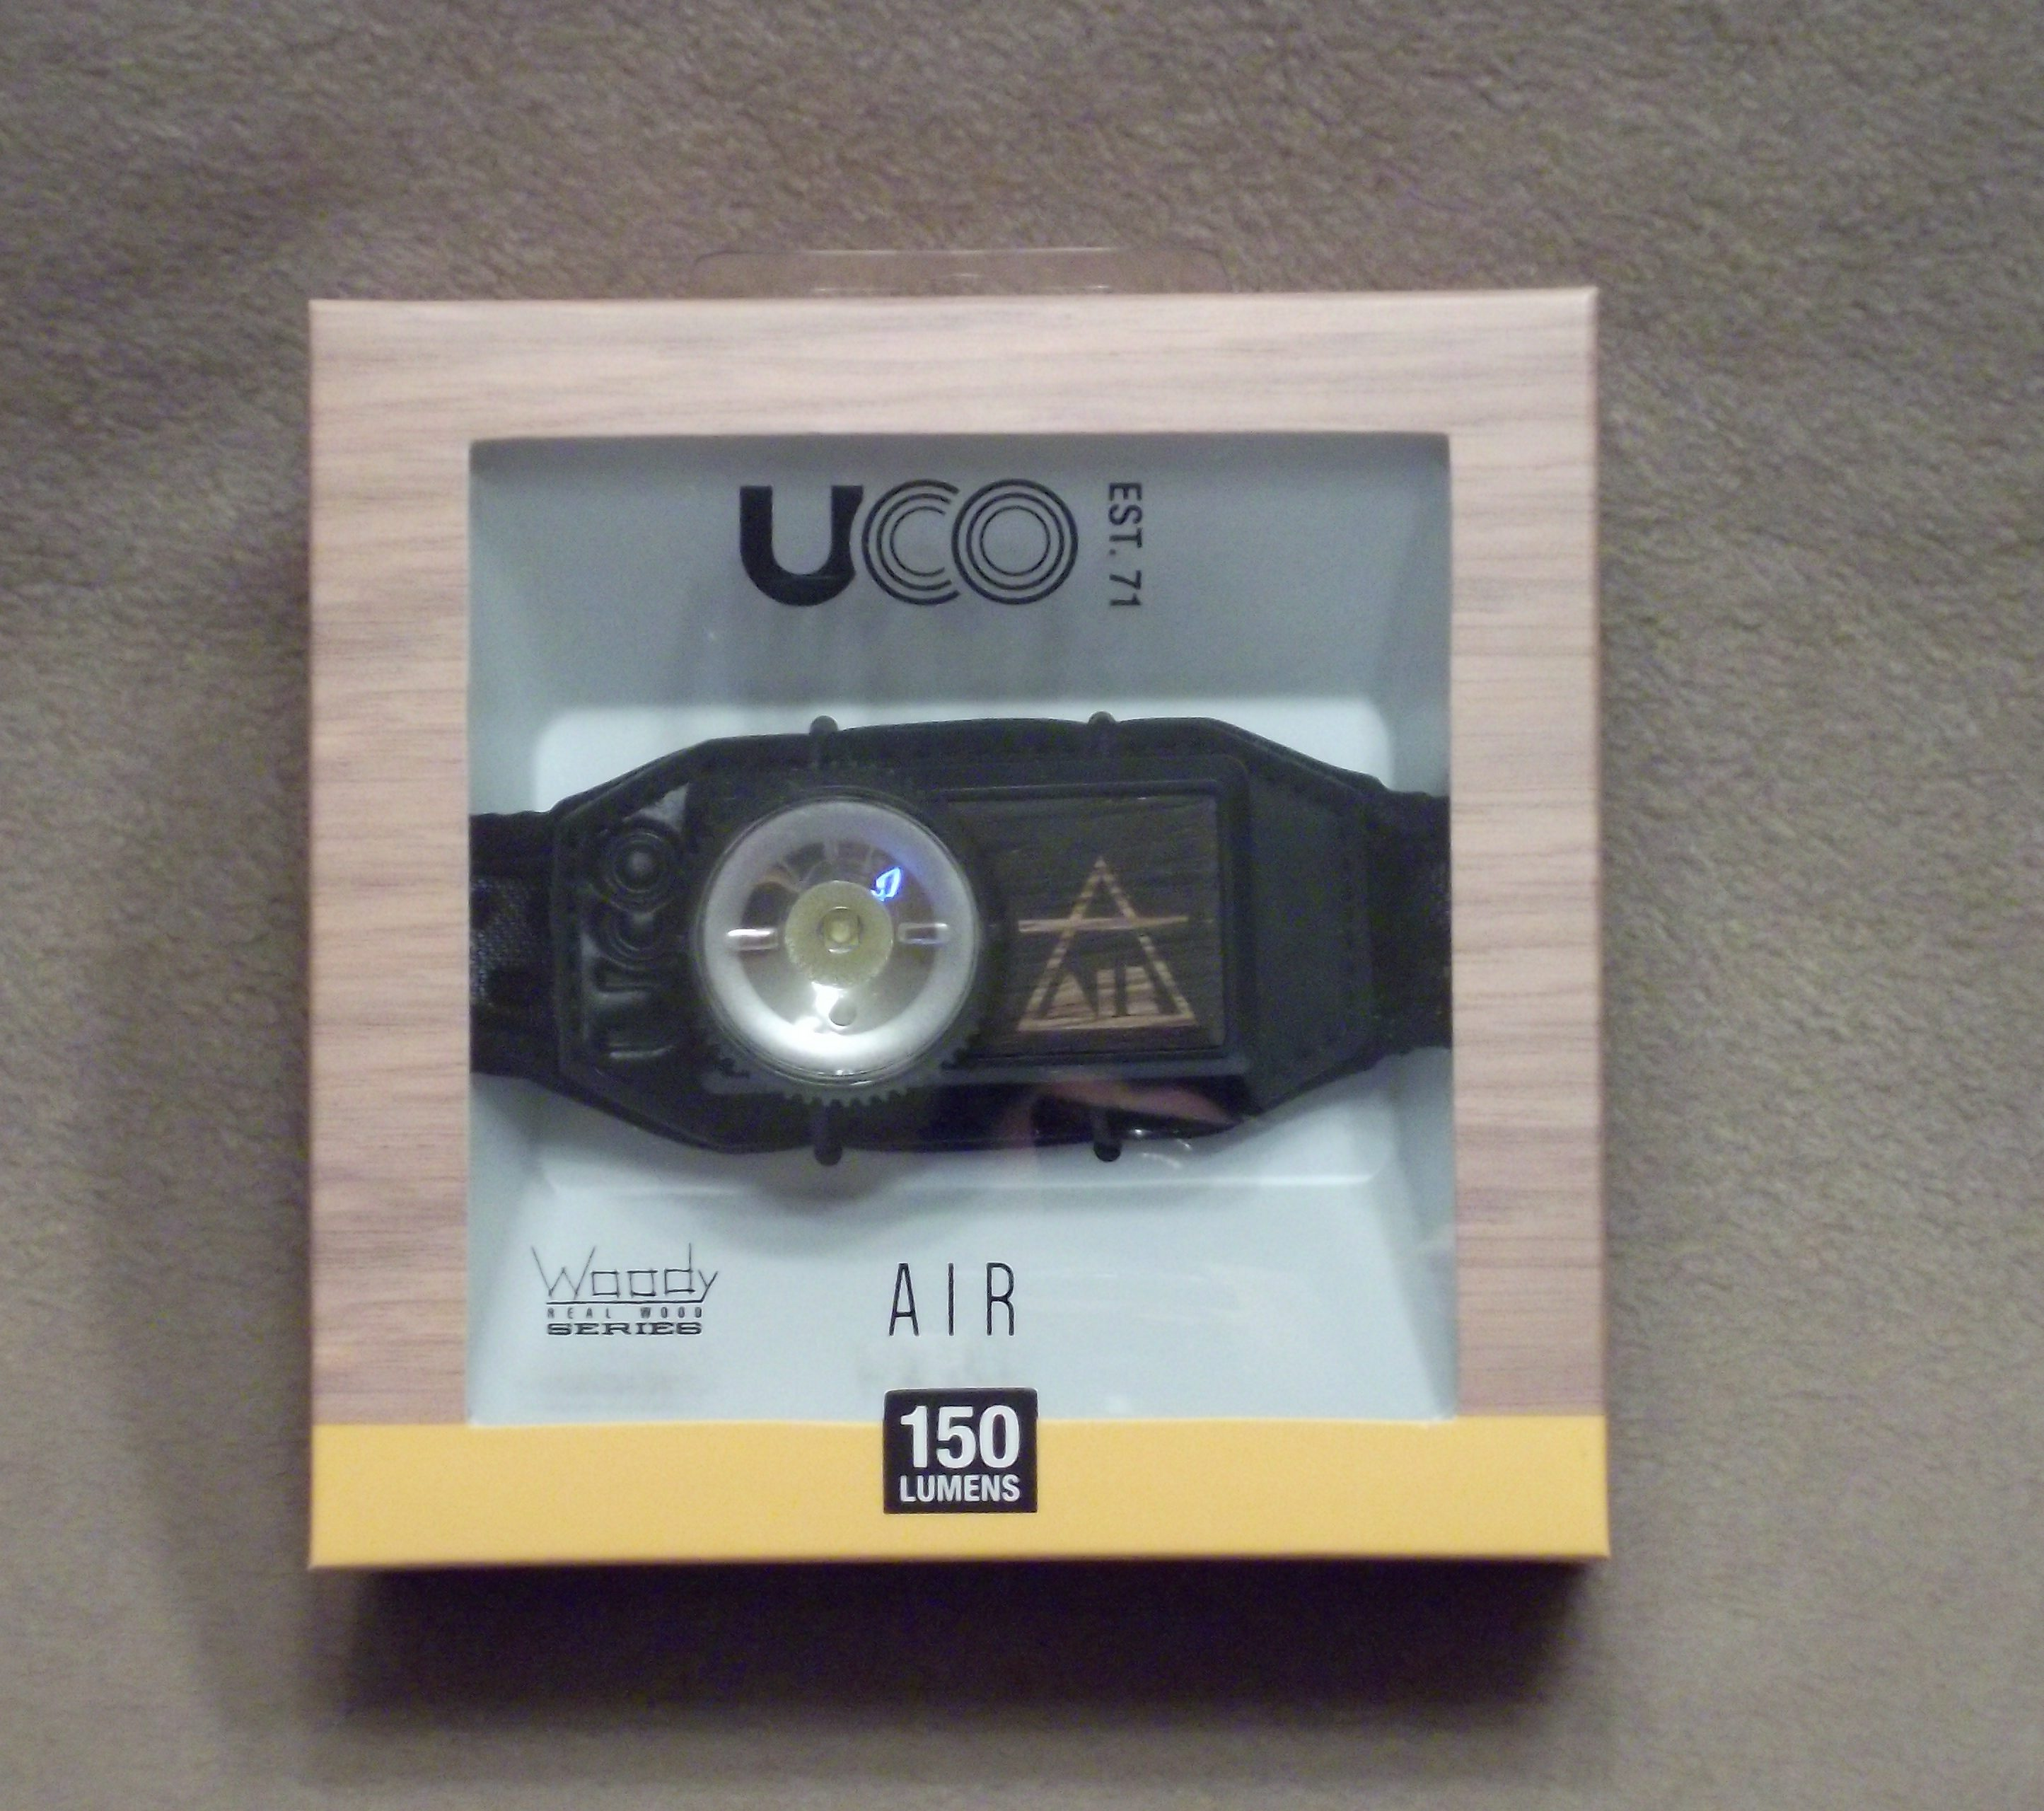 The Best Rechargeable Headlamp – UCO Gear Air Headlamp Review